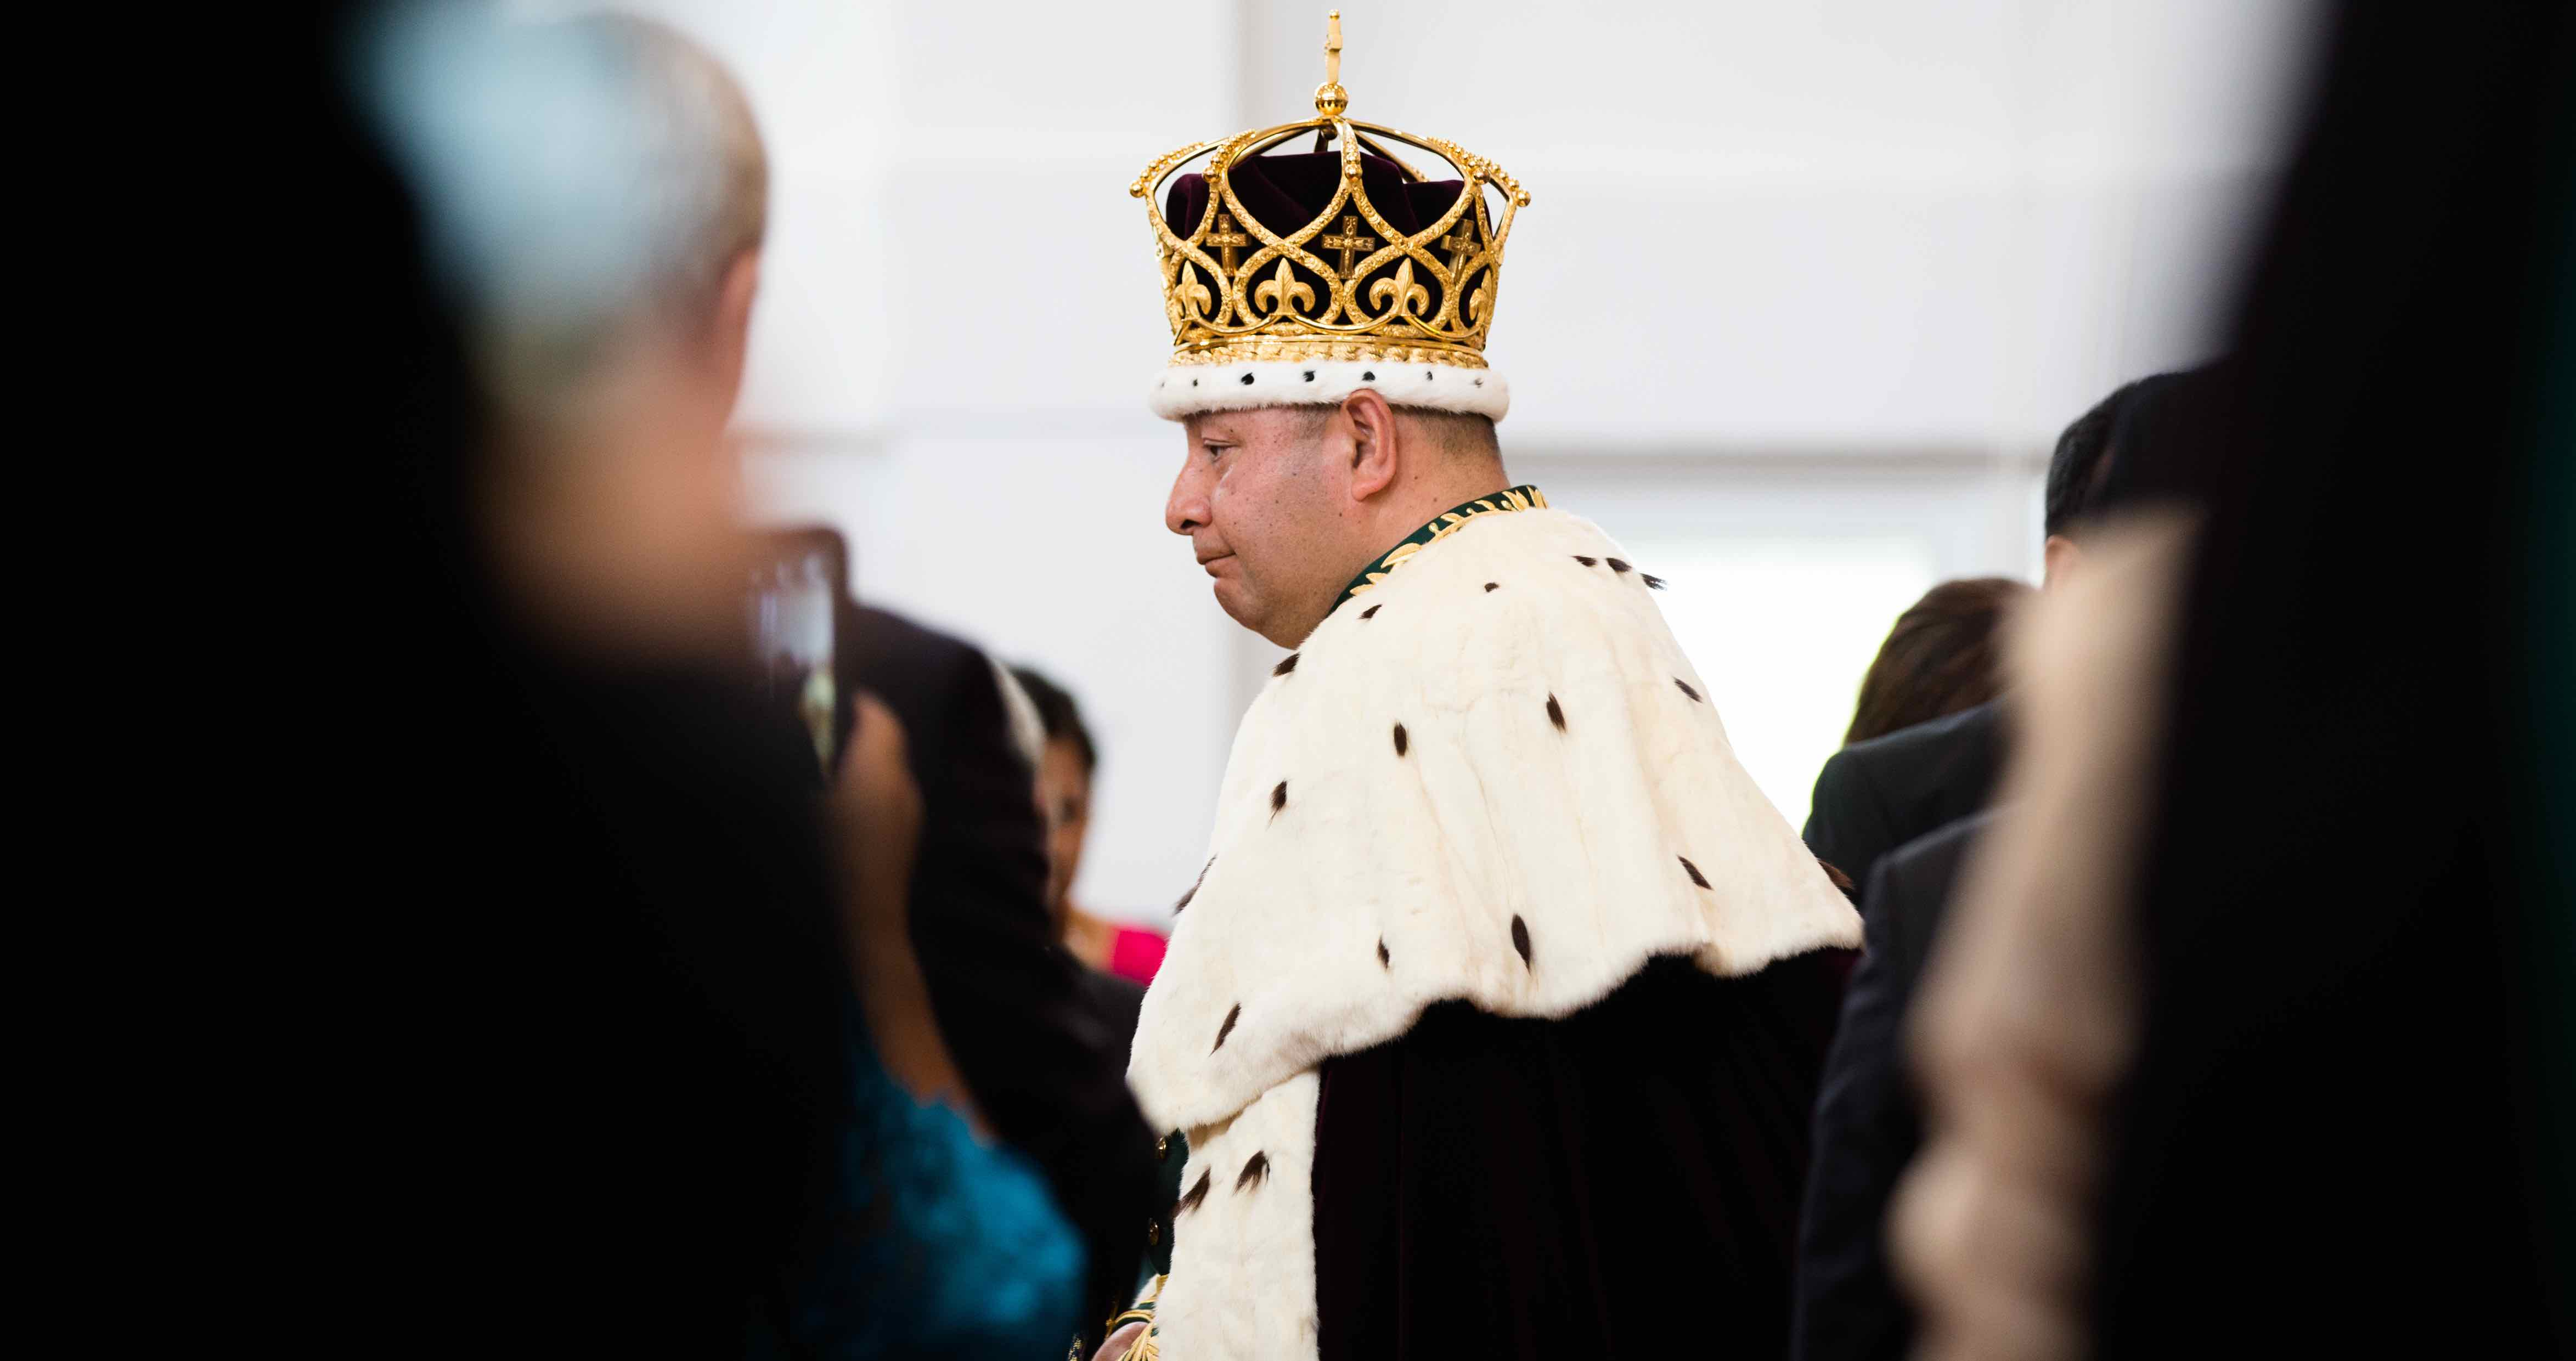 King Tupou VI of Tonga after the official coronation in 2015 (Photo: Edwina Pickles/Getty)